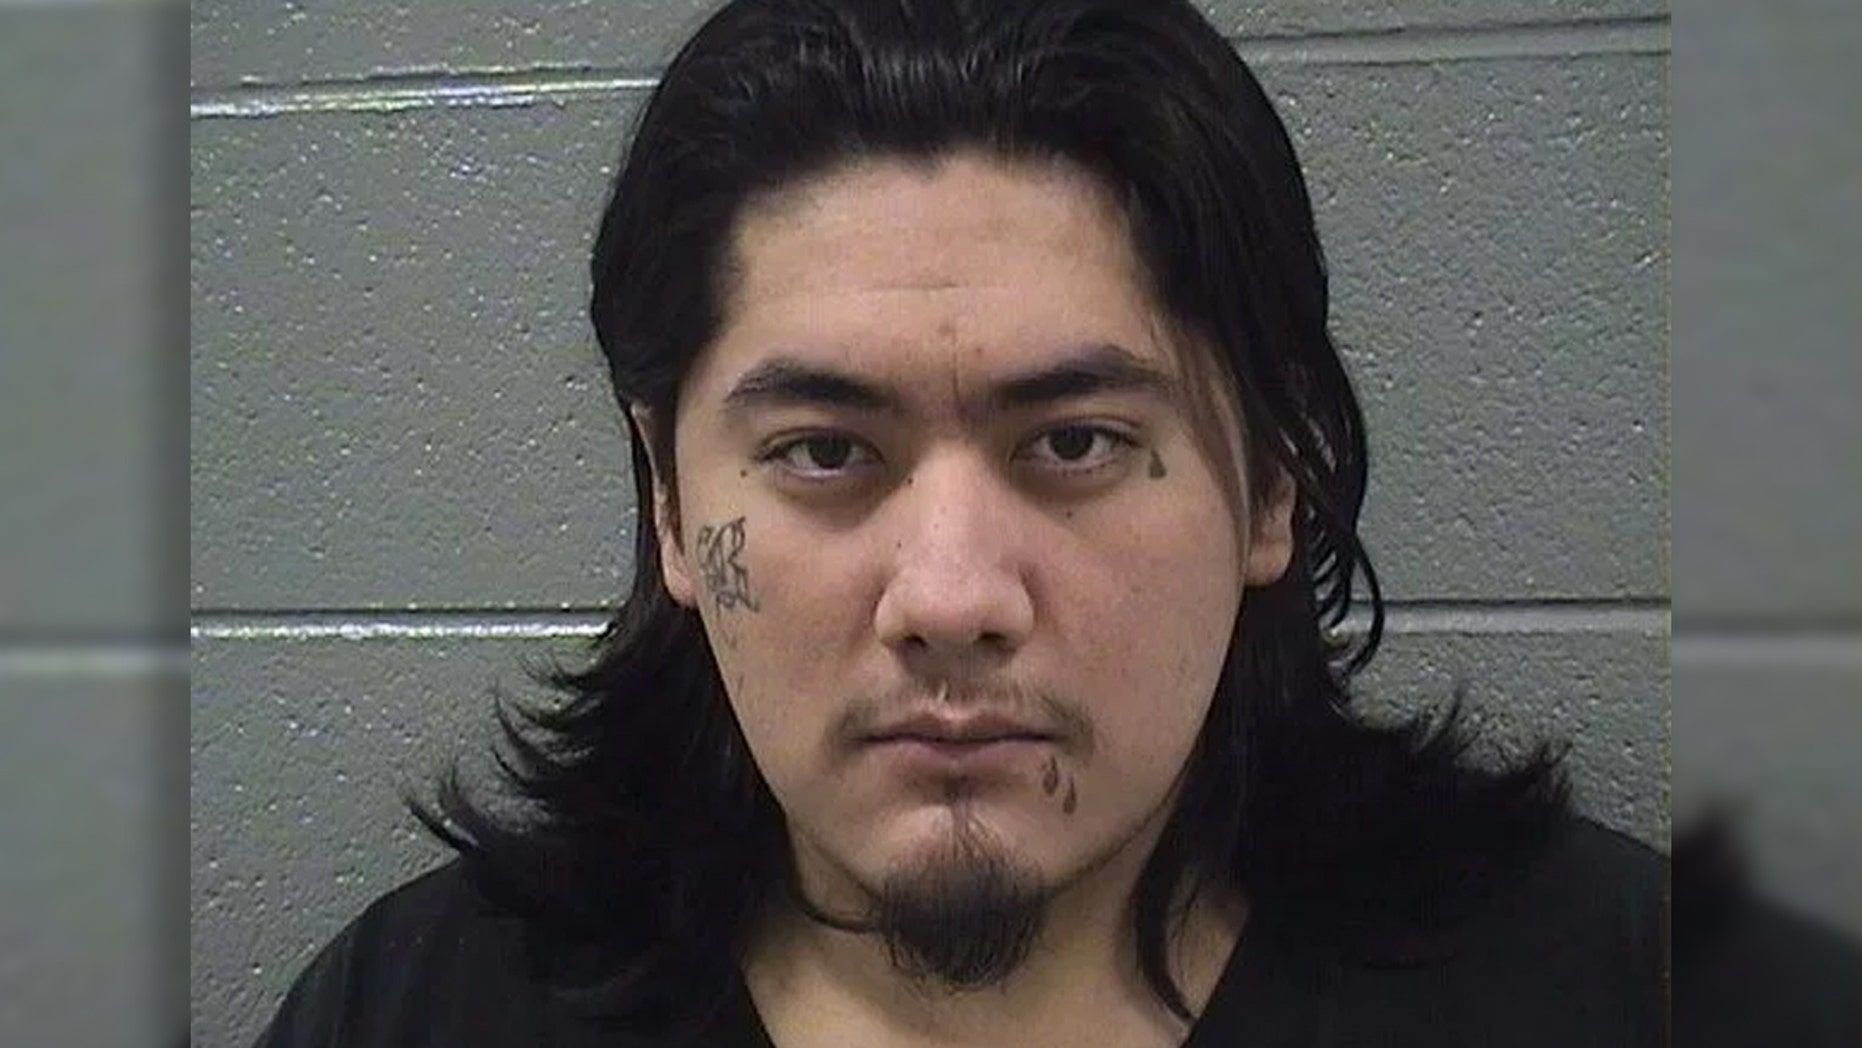 Sergio Gonzalez, 35, was charged with a second murder by Cook County prosecutors, after he admitted to dragging the victim into a vehicle and helping to carry out the shooting.